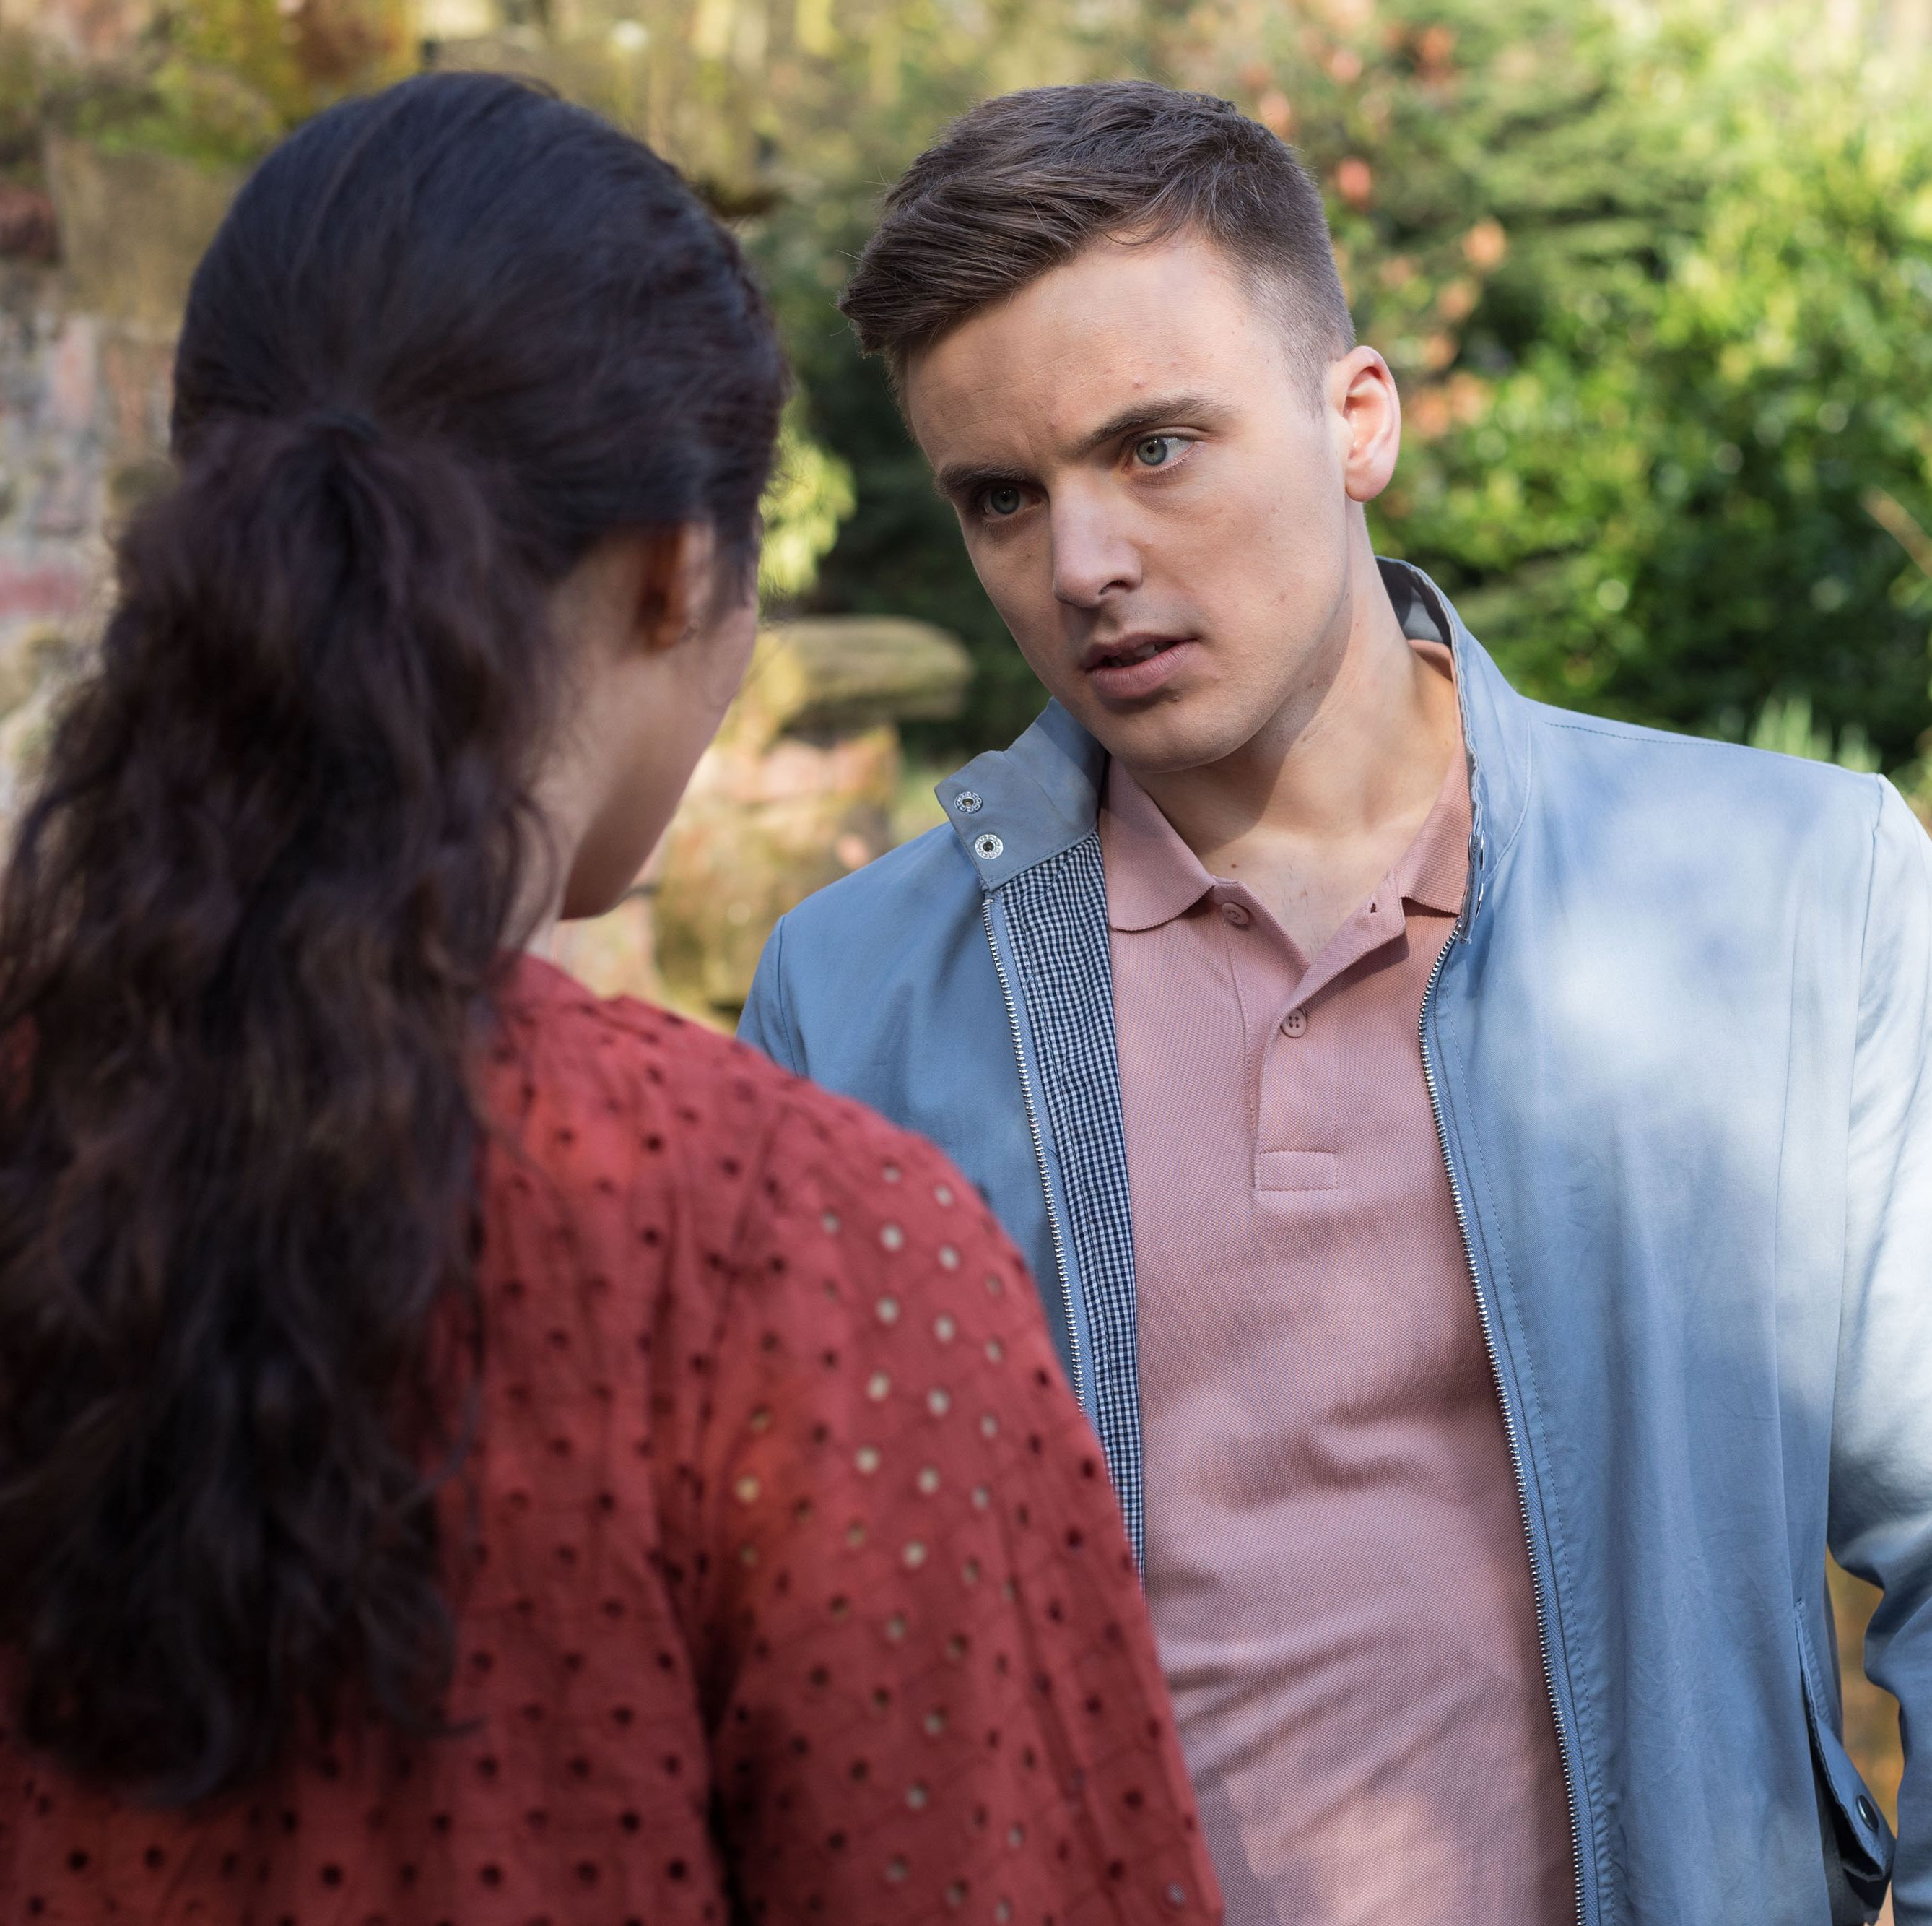 Hollyoaks: 13 new spoiler pictures reveal Harry Thompson's secret meeting